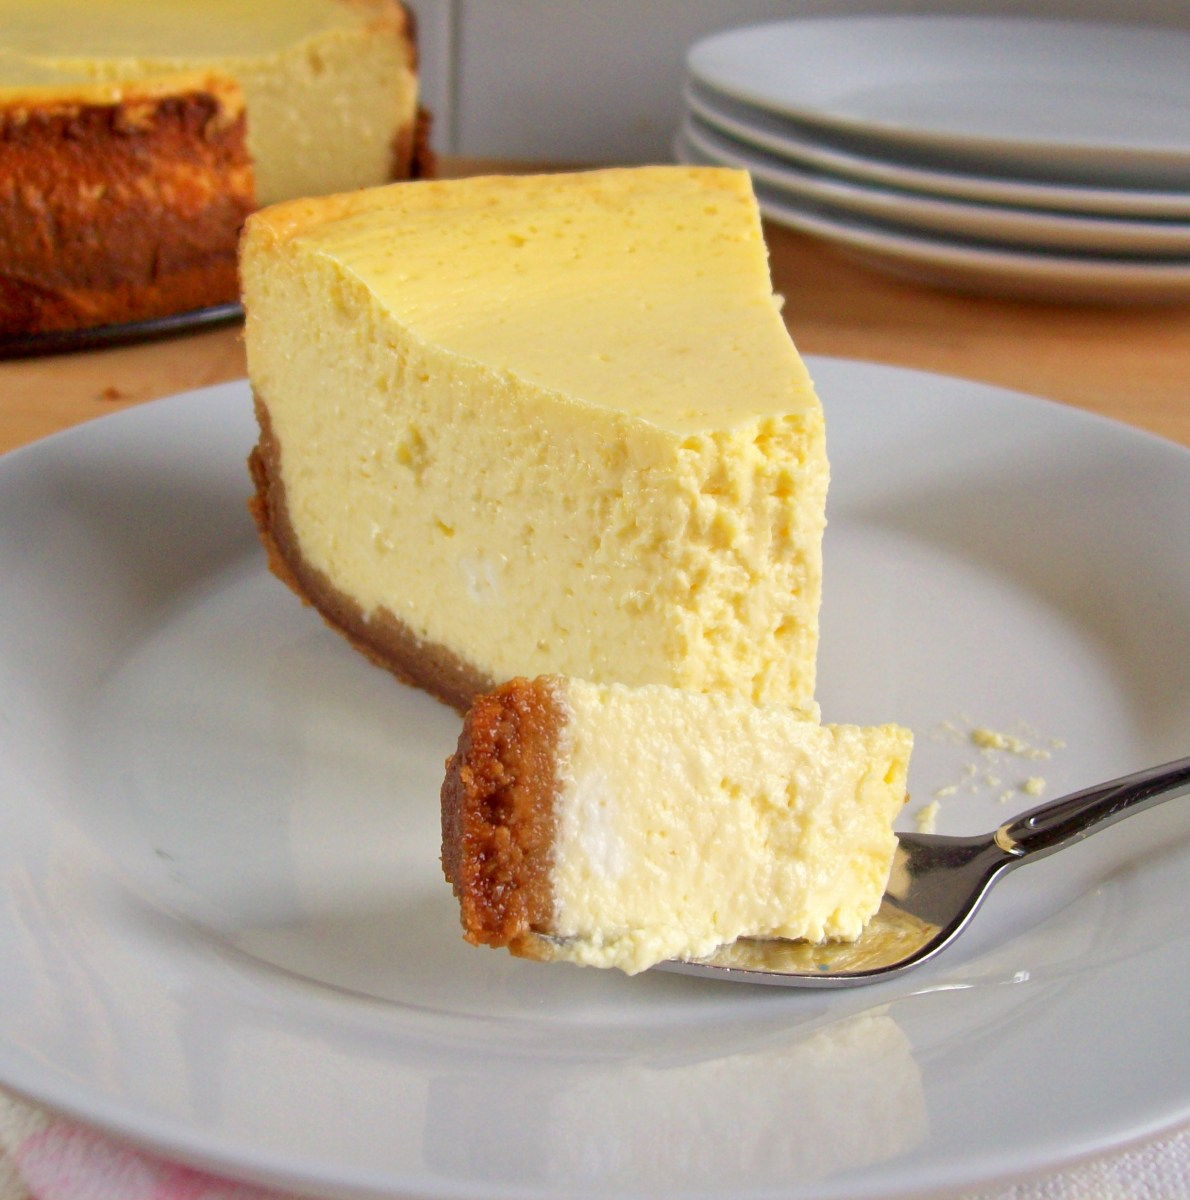 Gâteau au fromage (cheesecake)